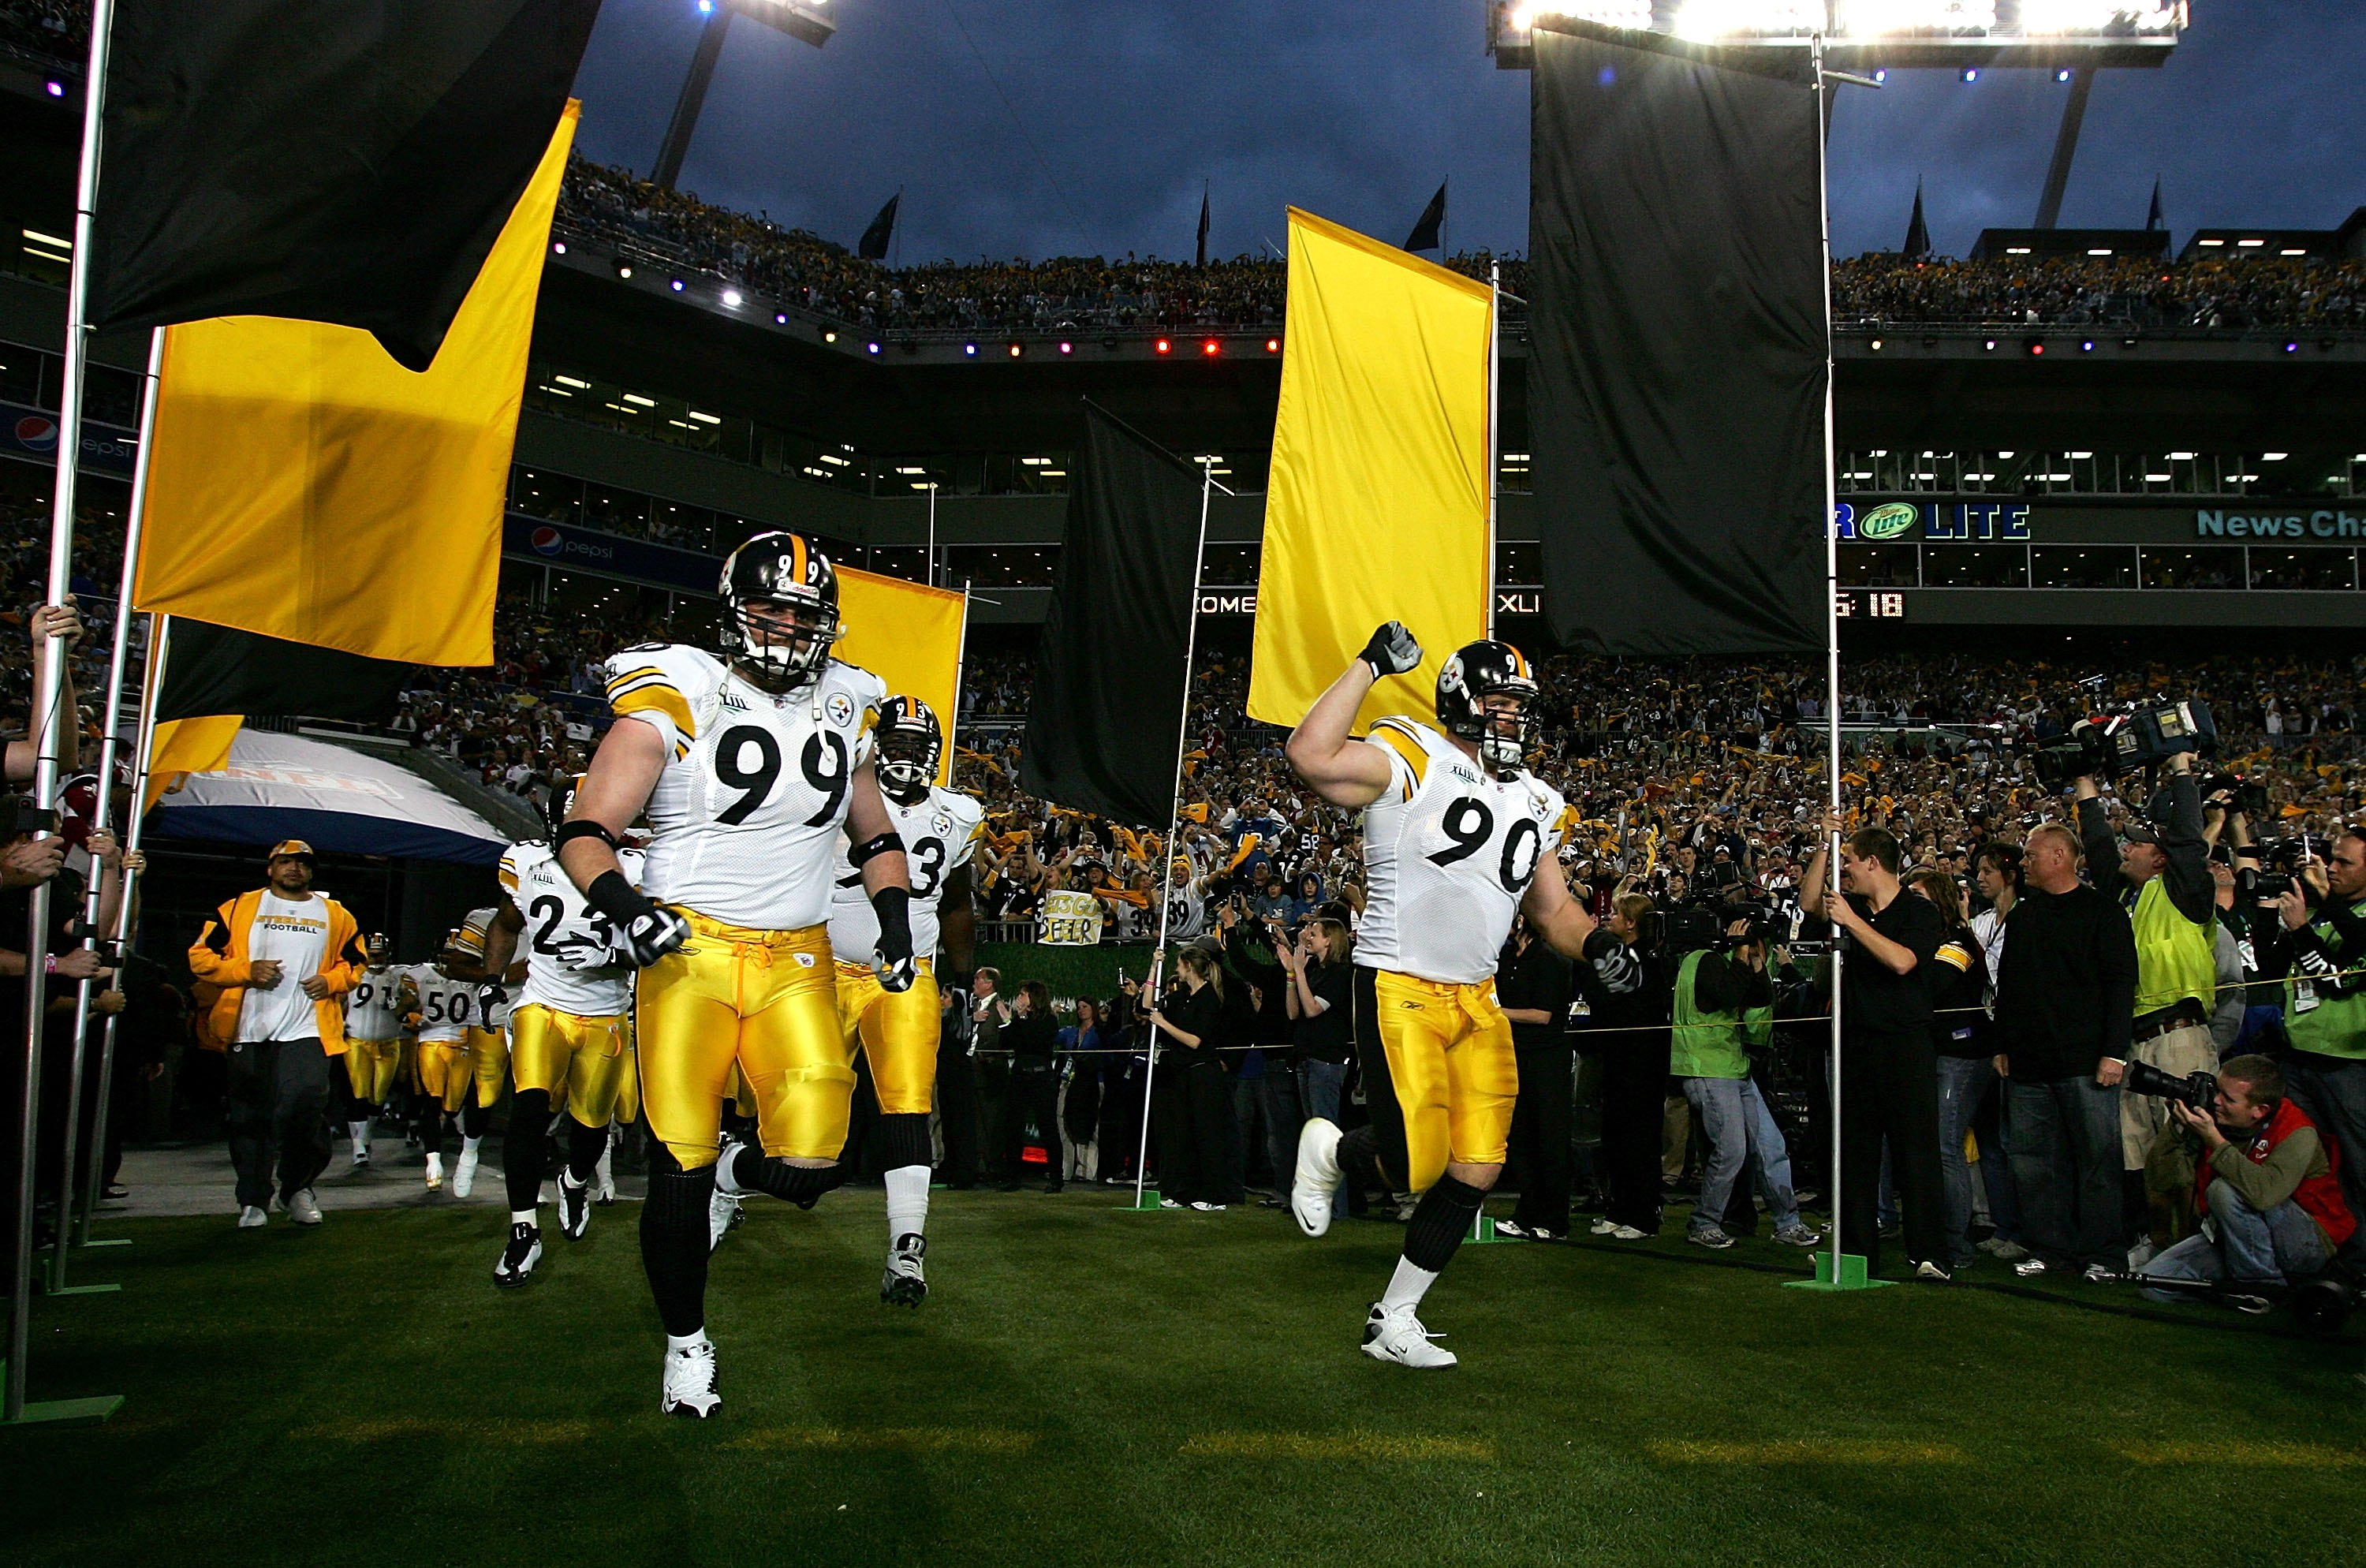 TAMPA, FL - FEBRUARY 01:  (L-R) Brett Keisel #99 and Travis Kirschke #99 of the Pittsburgh Steelers take the field during player introductions against the Arizona Cardinals during Super Bowl XLIII on February 1, 2009 at Raymond James Stadium in Tampa, Flo